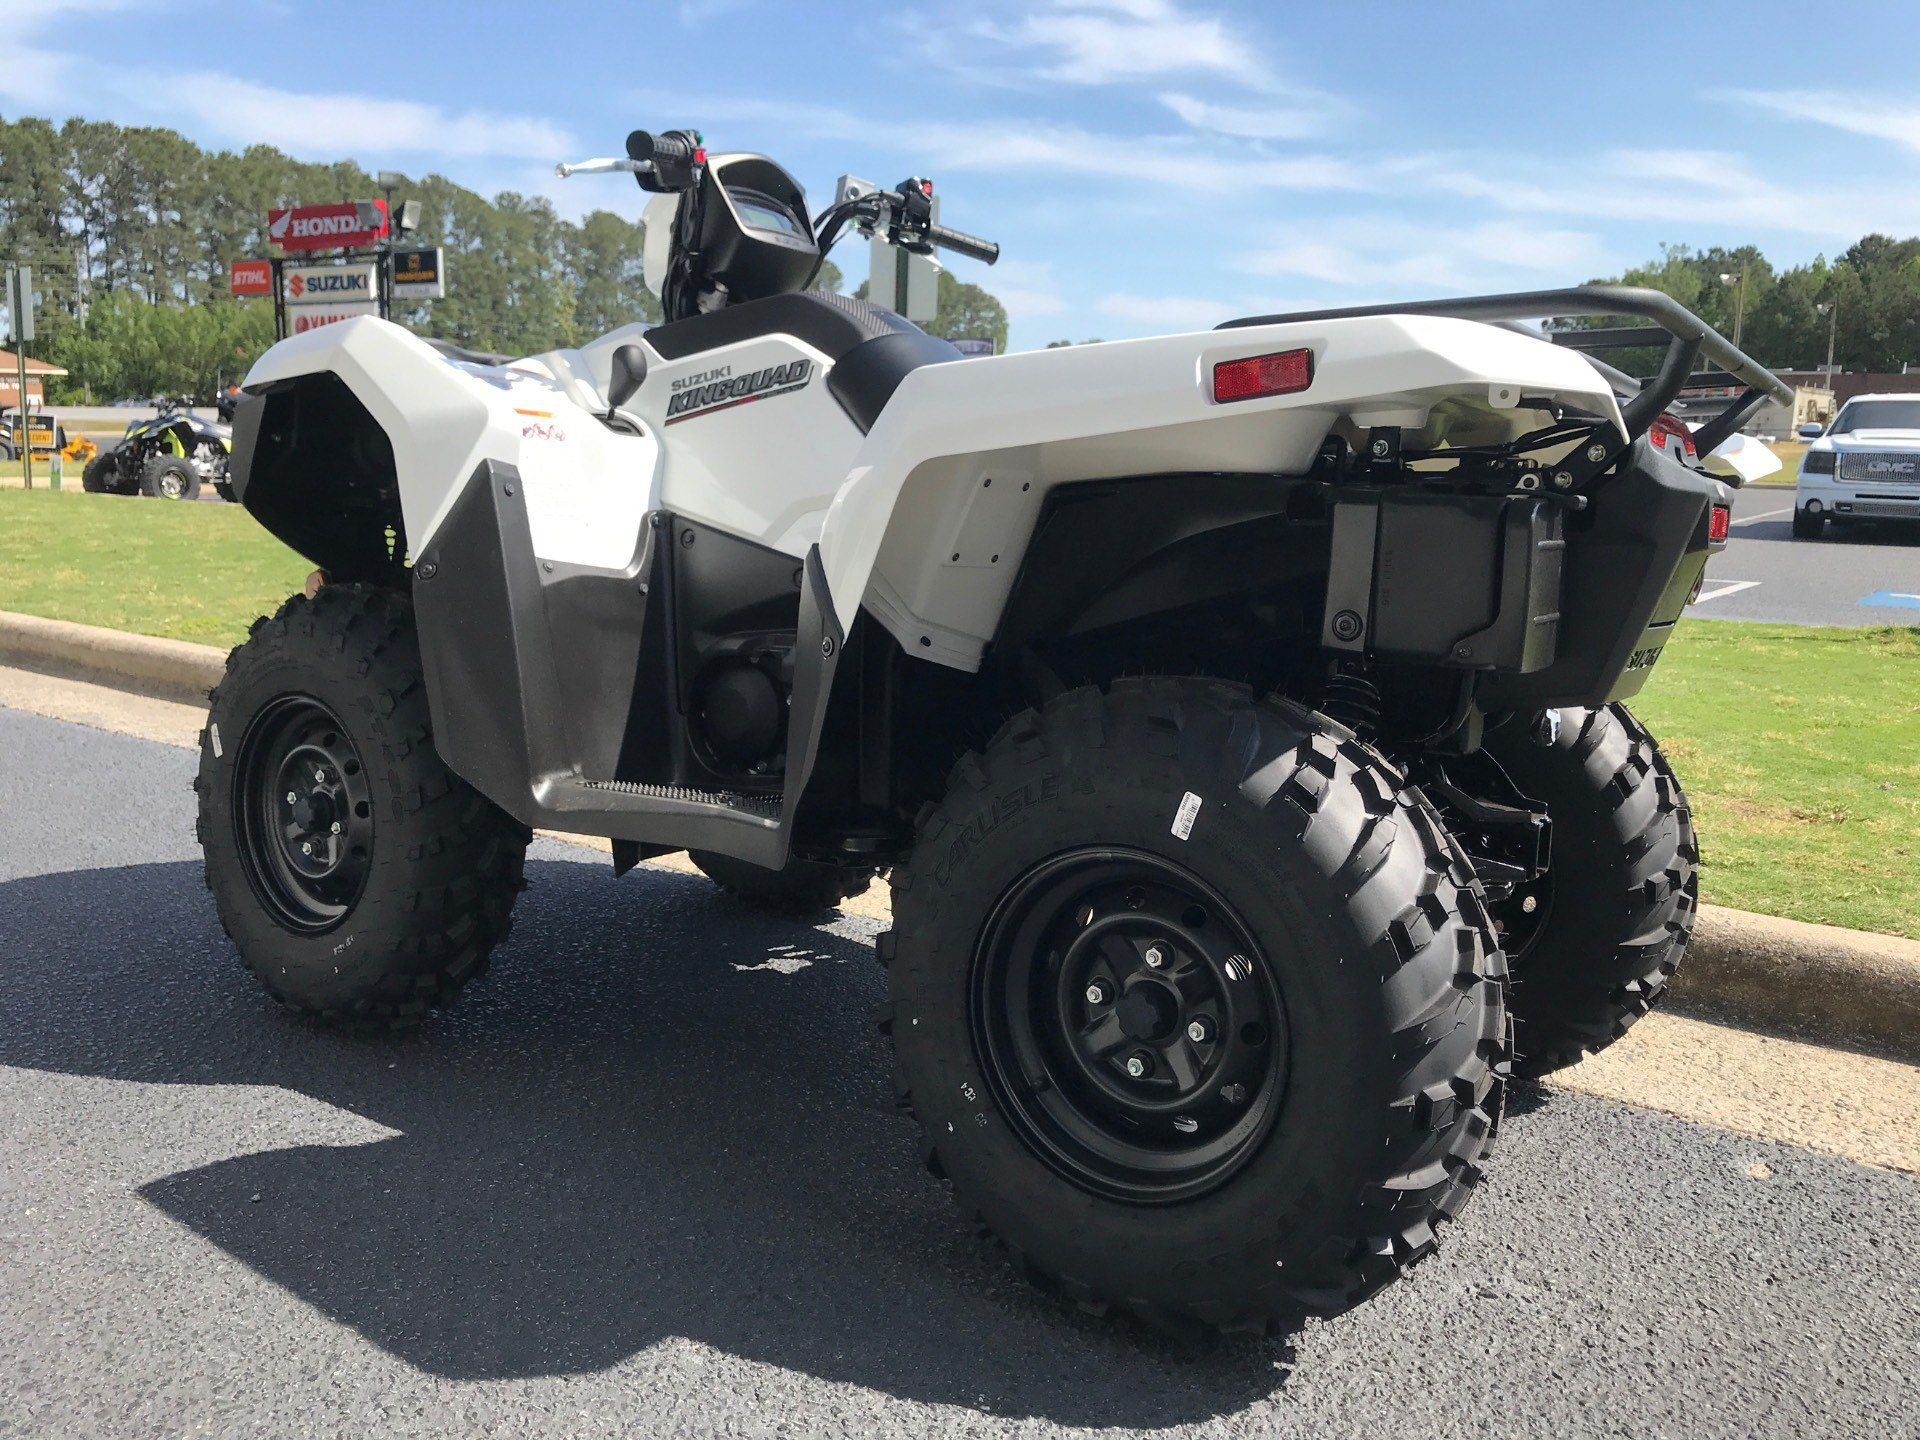 2020 Suzuki KingQuad 750AXi Power Steering in Greenville, North Carolina - Photo 6